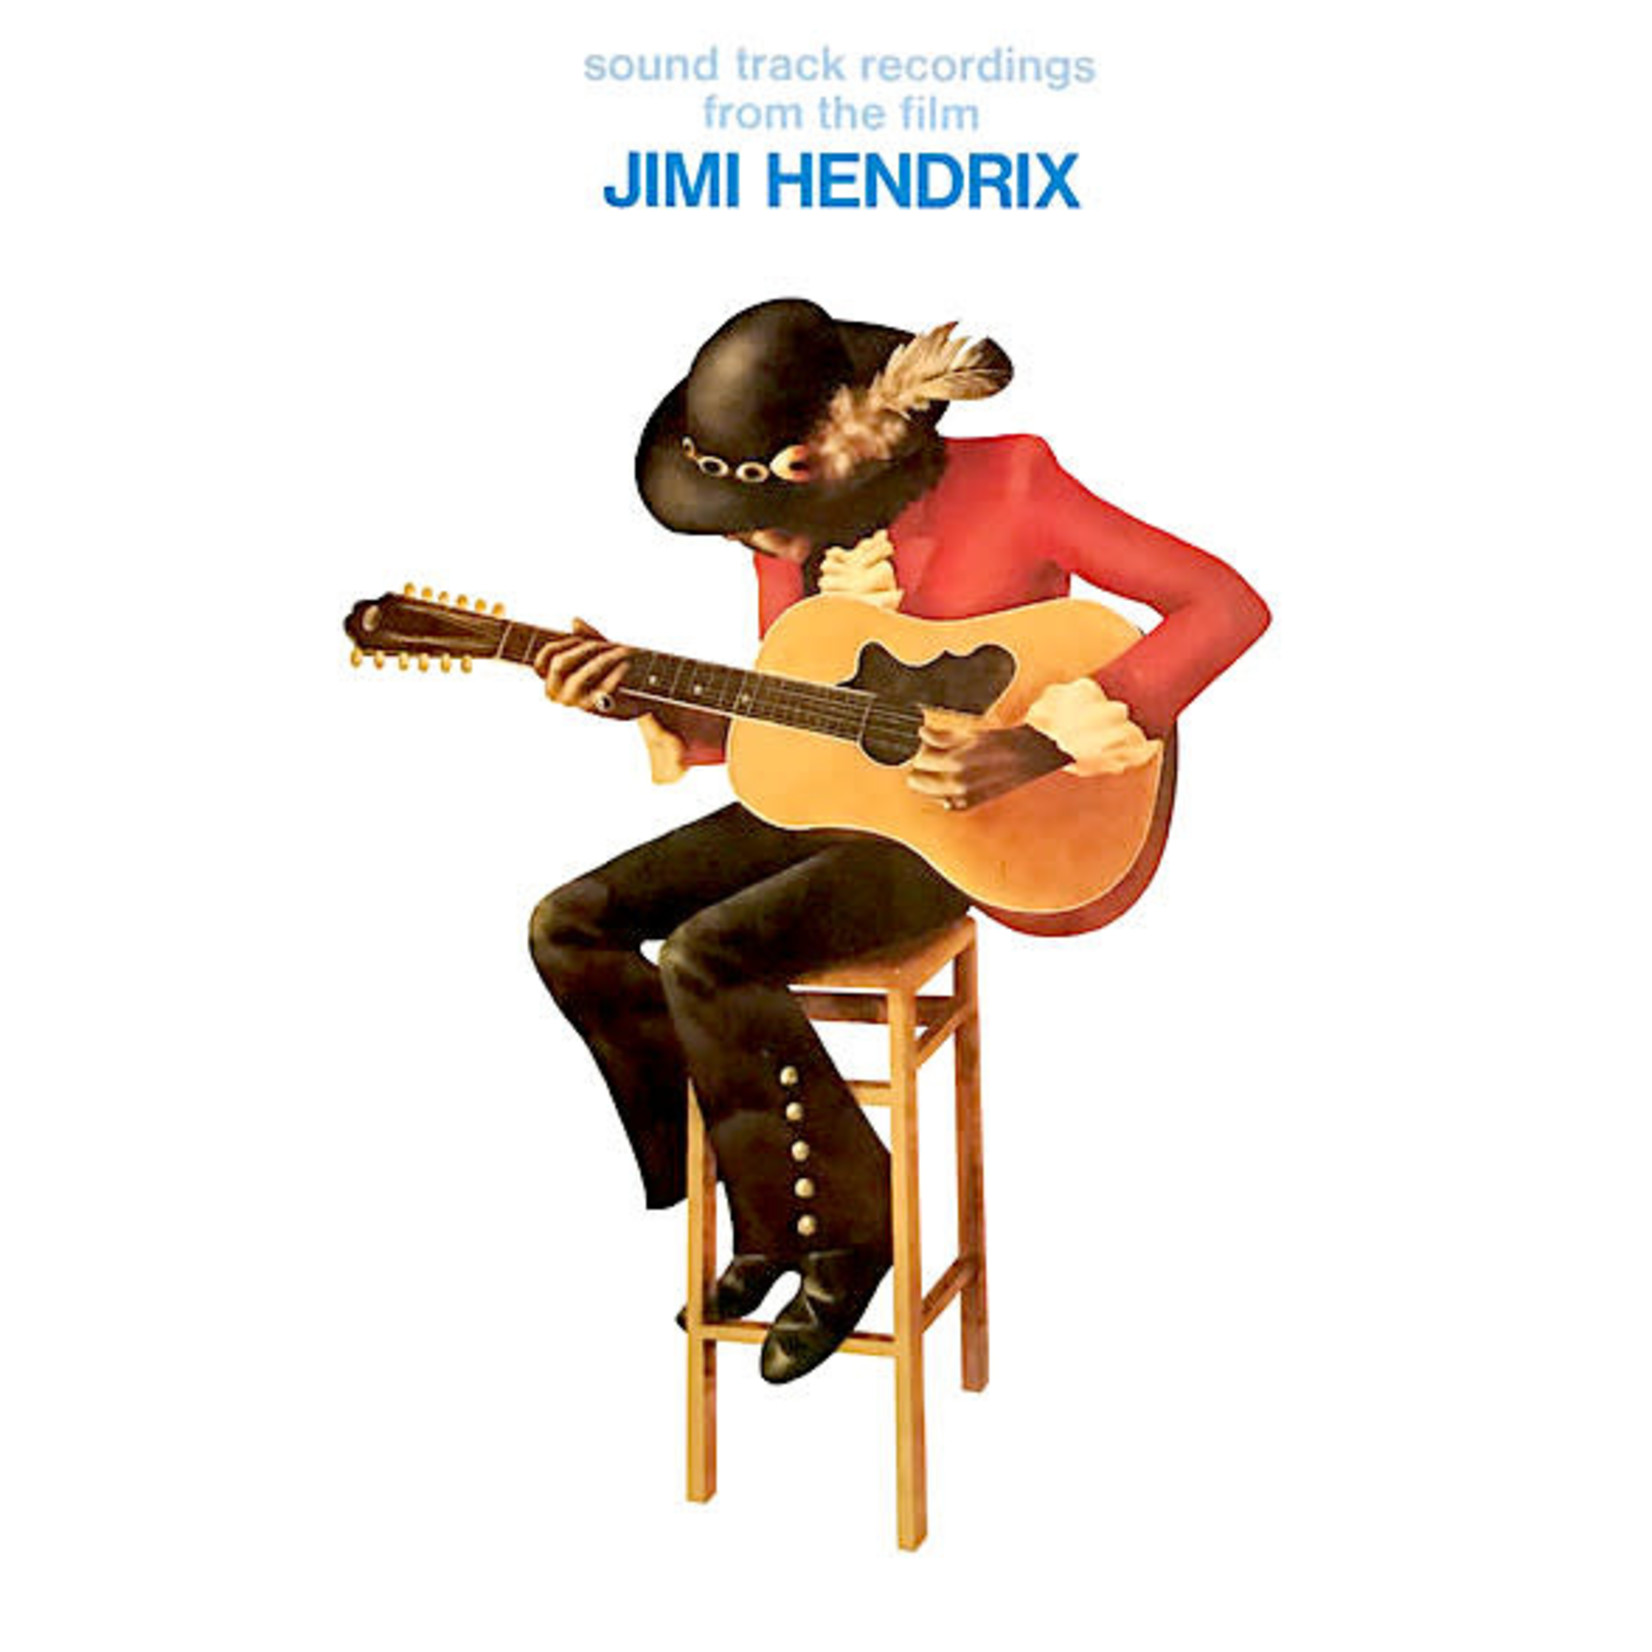 [Vintage] Hendrix, Jimi: Sound Track Recordings From the Film (2LP)